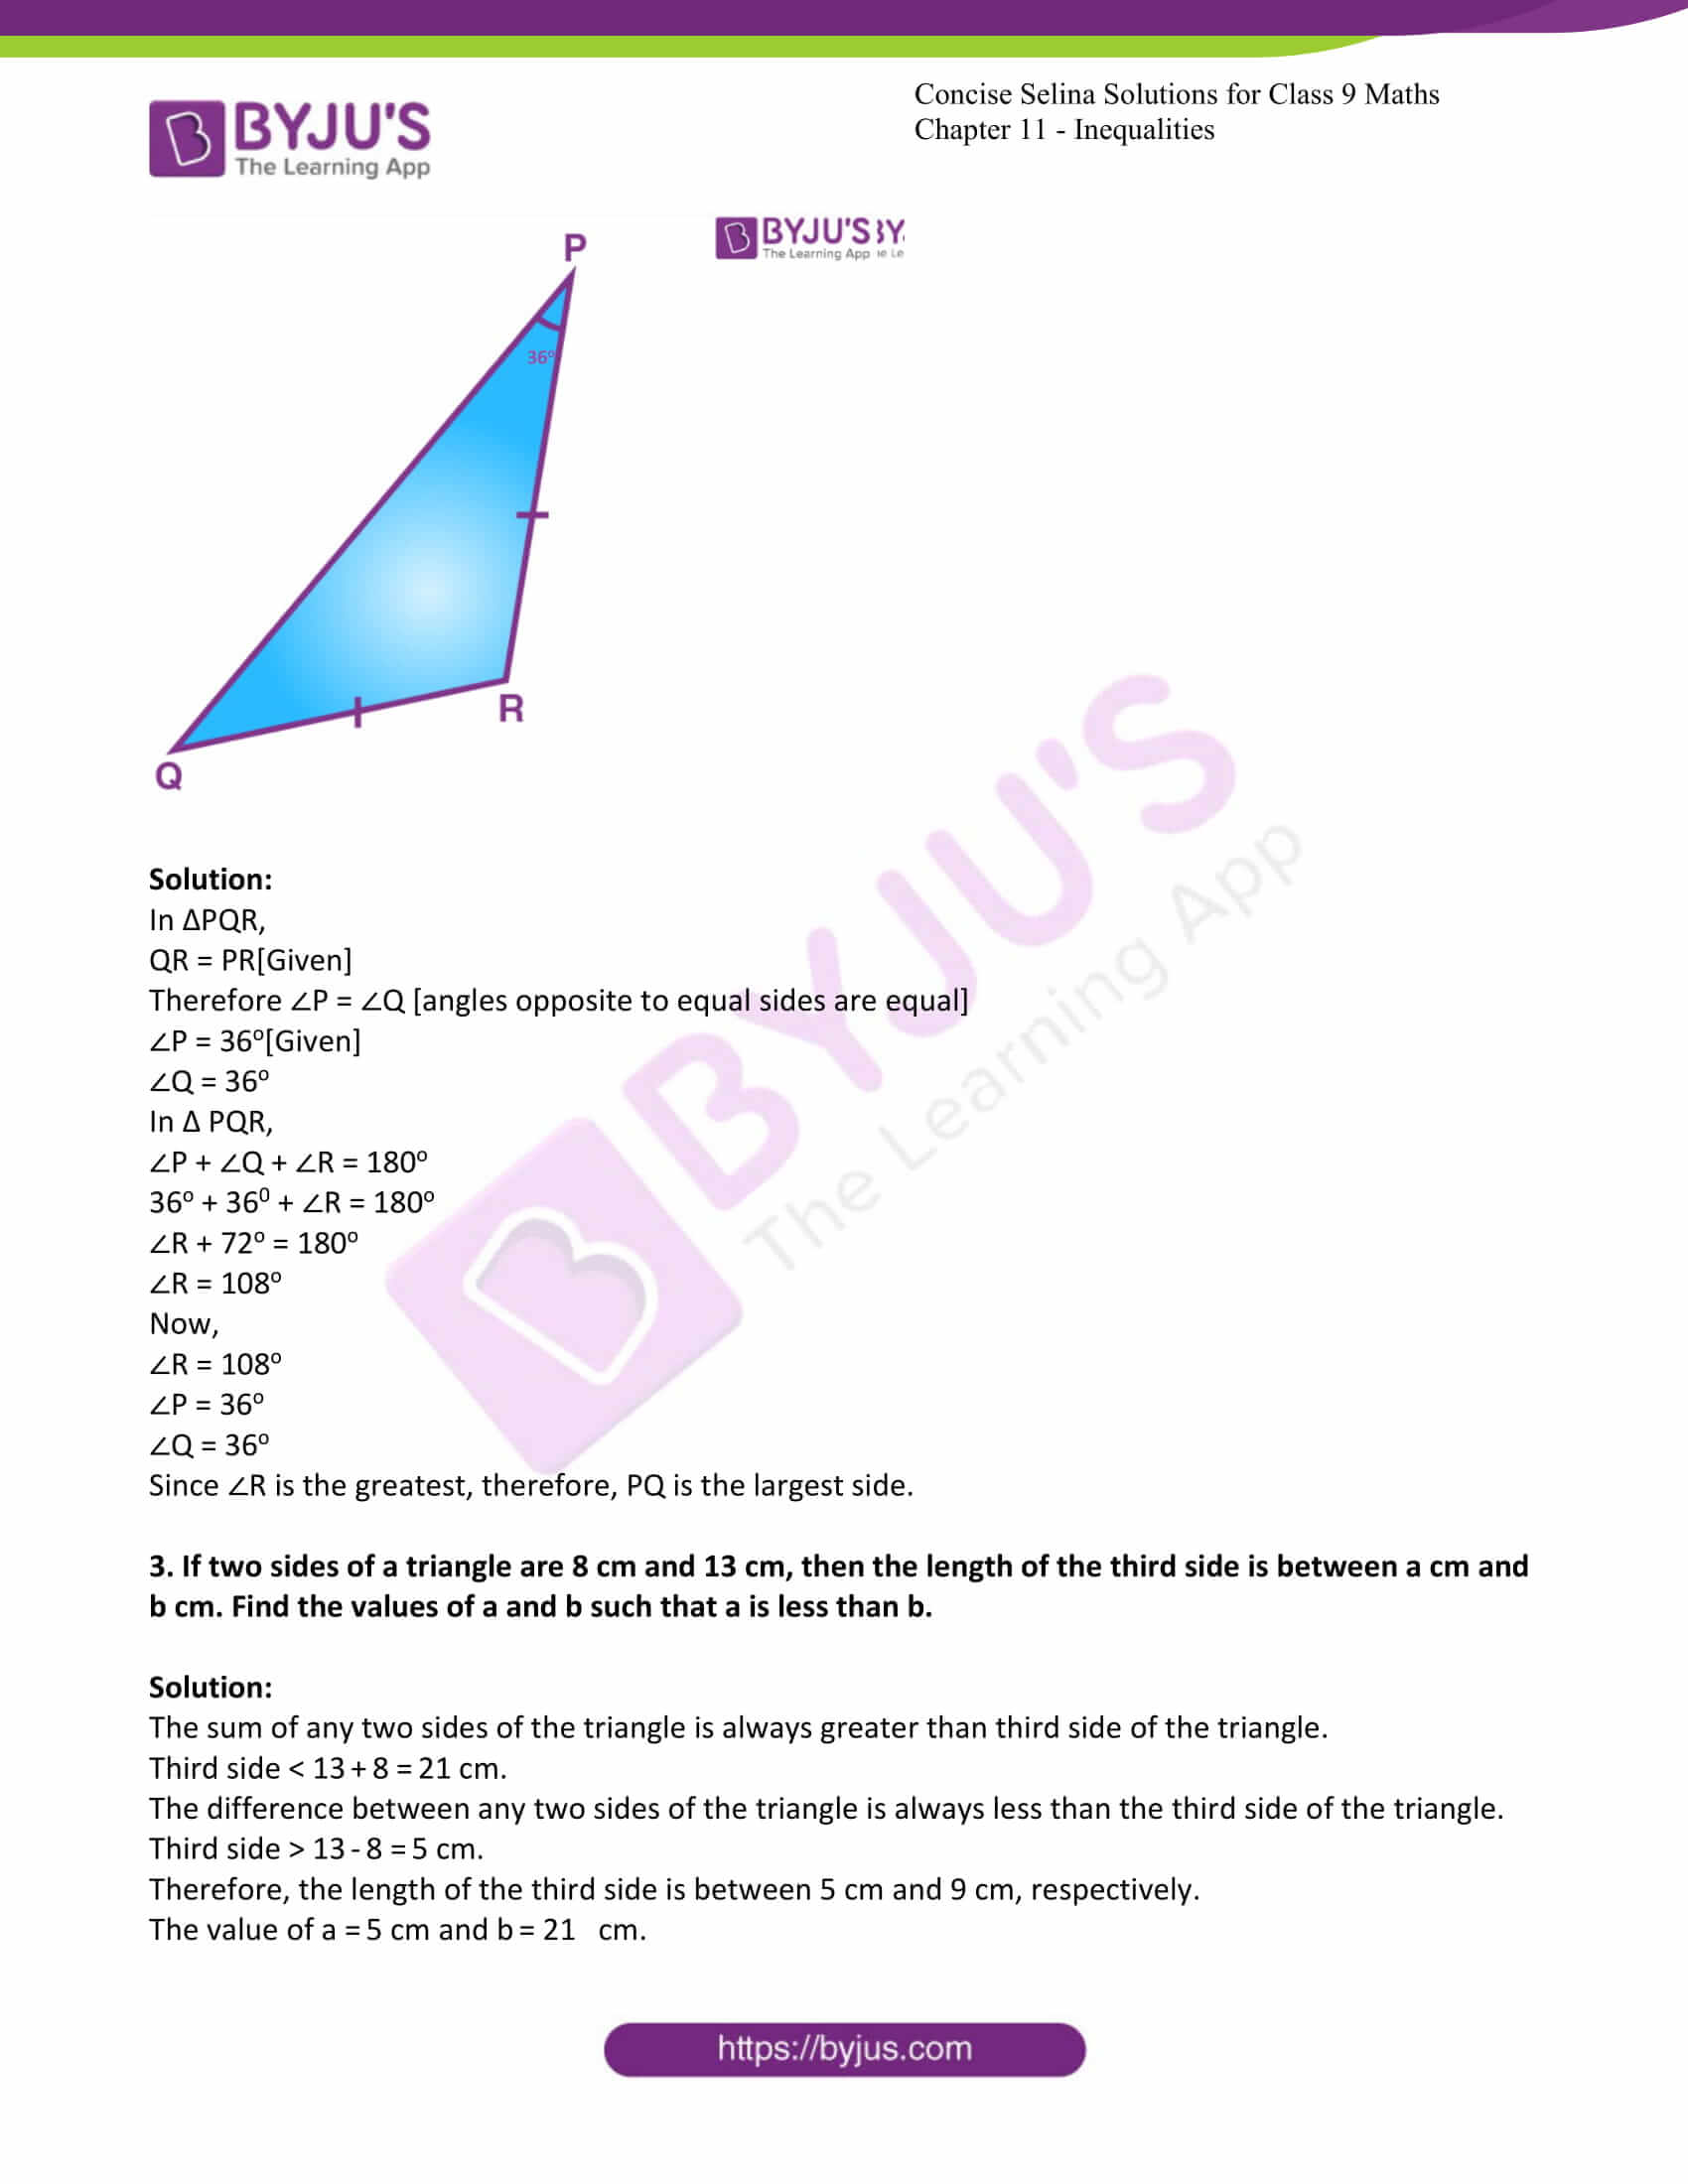 icse class 9 maths may10 selina solutions chapter 11 inequalities 02